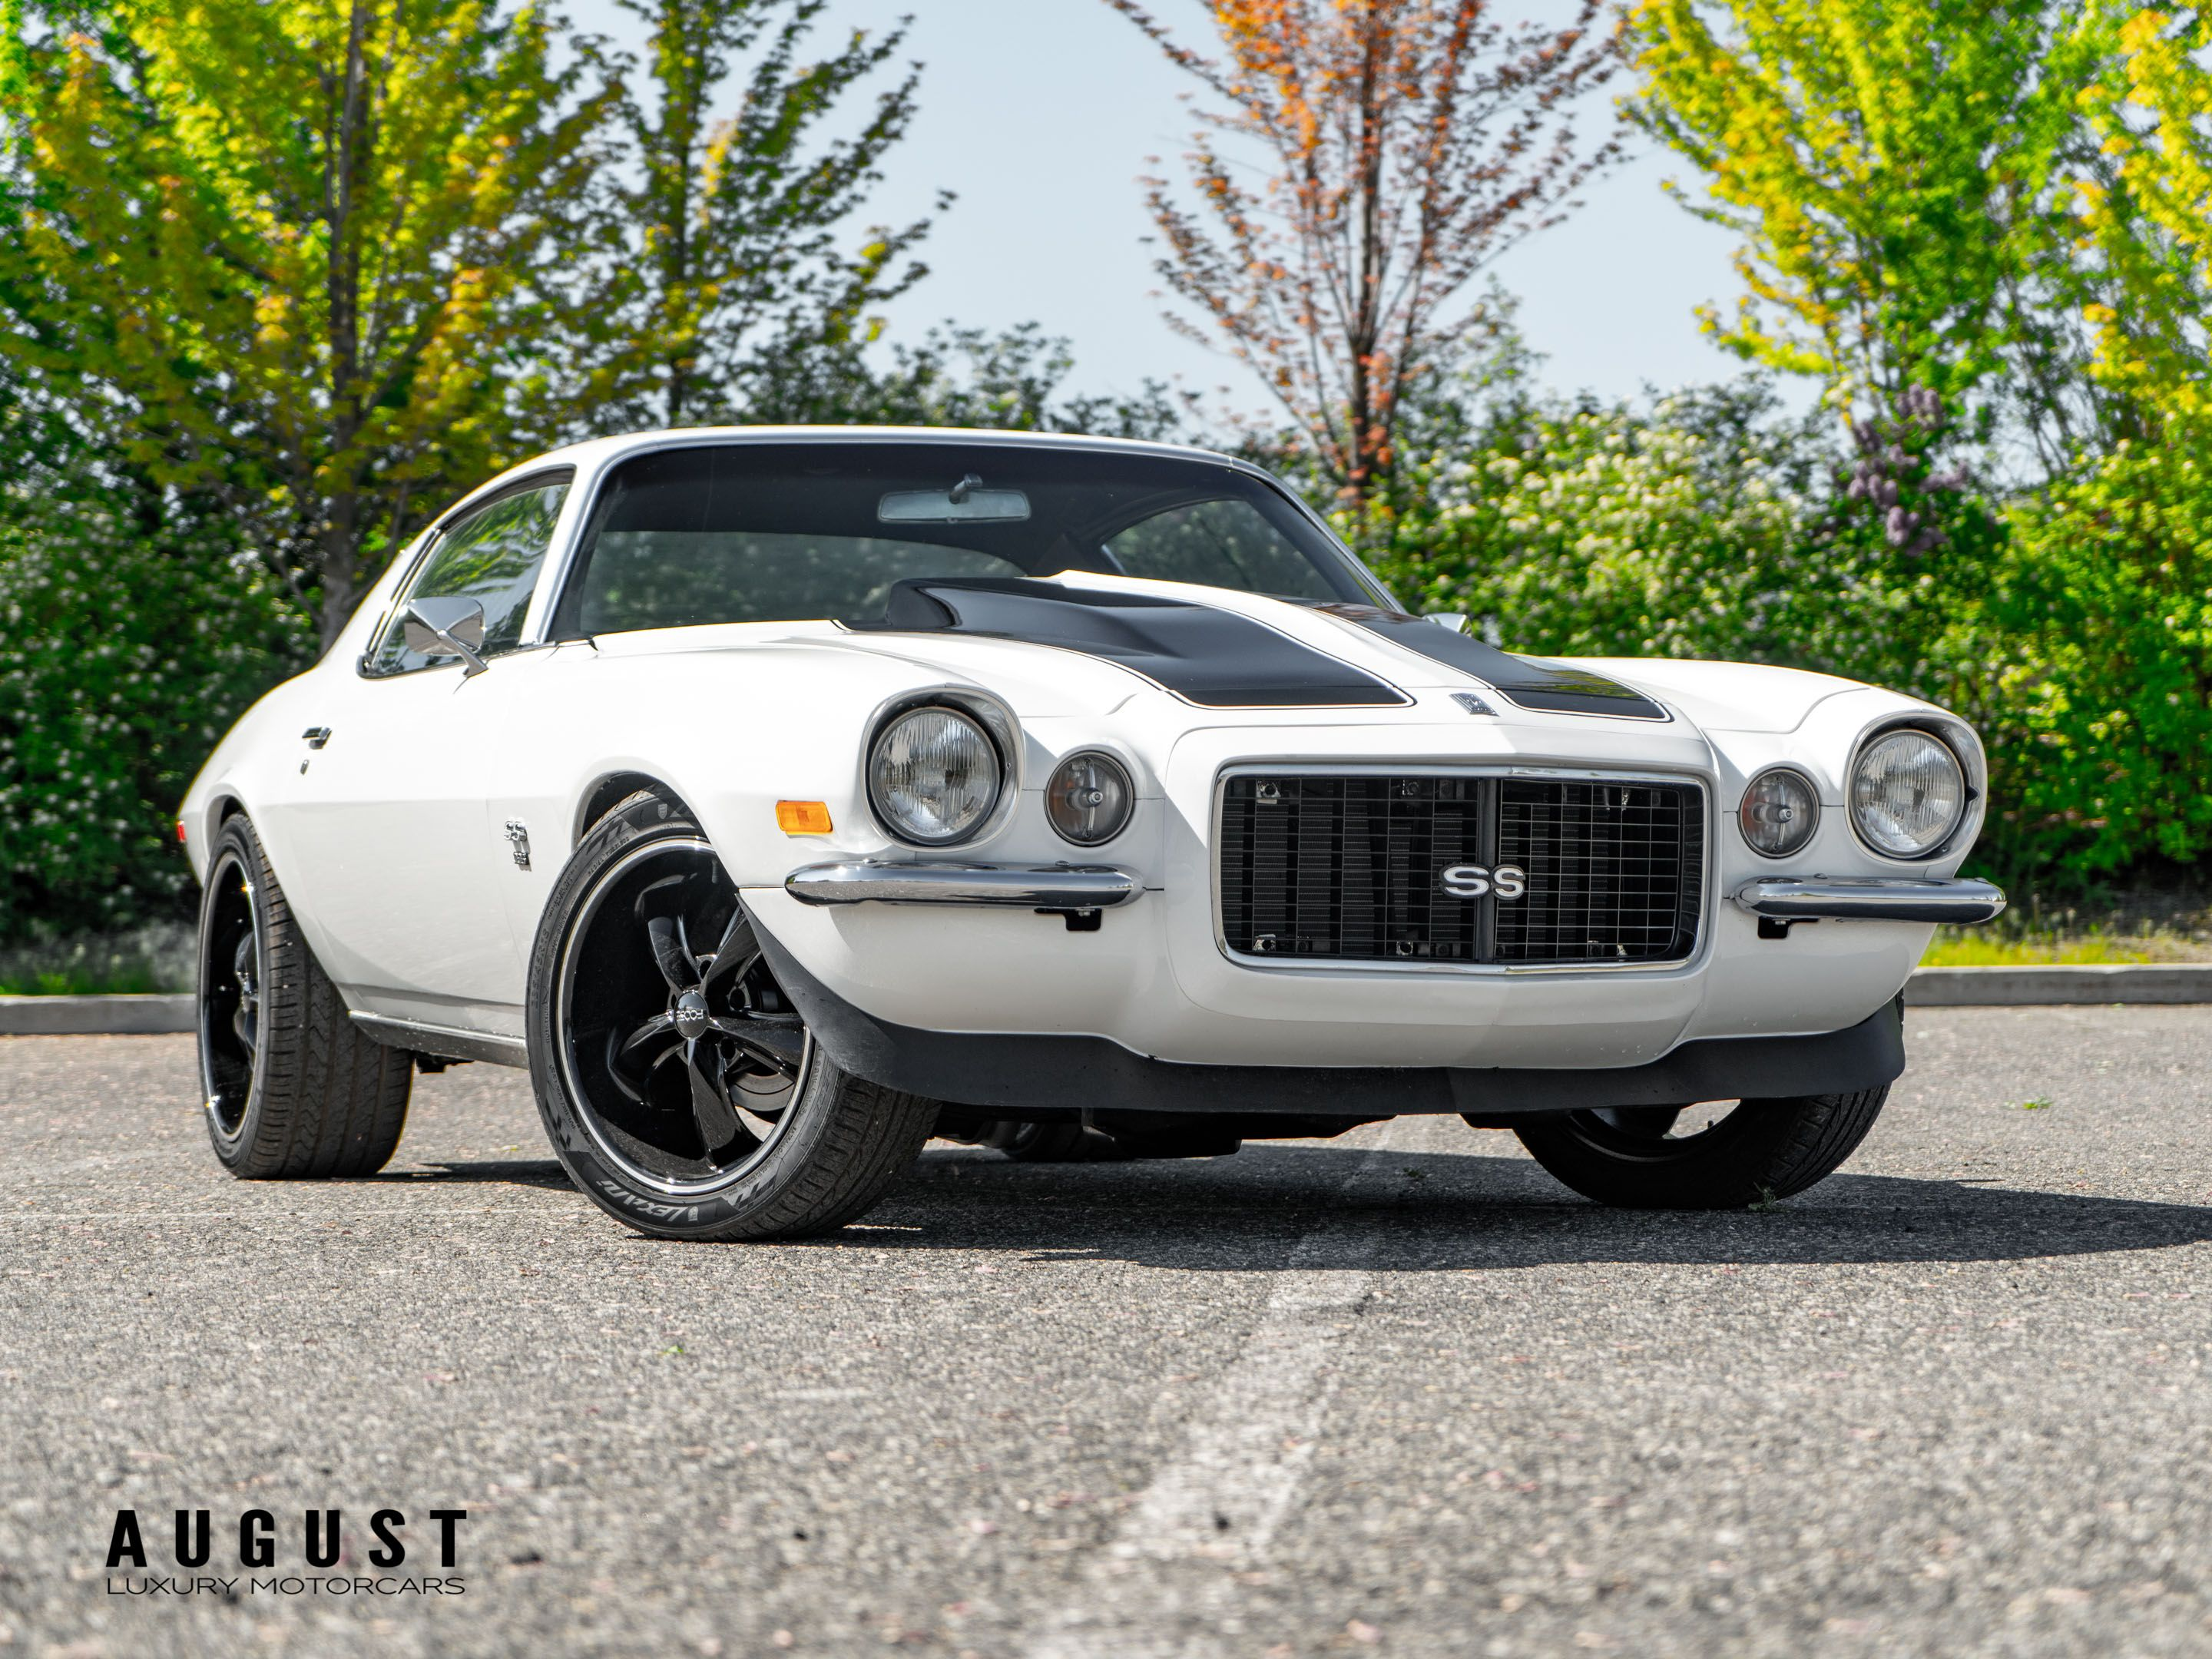 Pre-Owned 1970 Chevrolet Camaro SS WITH 502 CRATE ENGINE